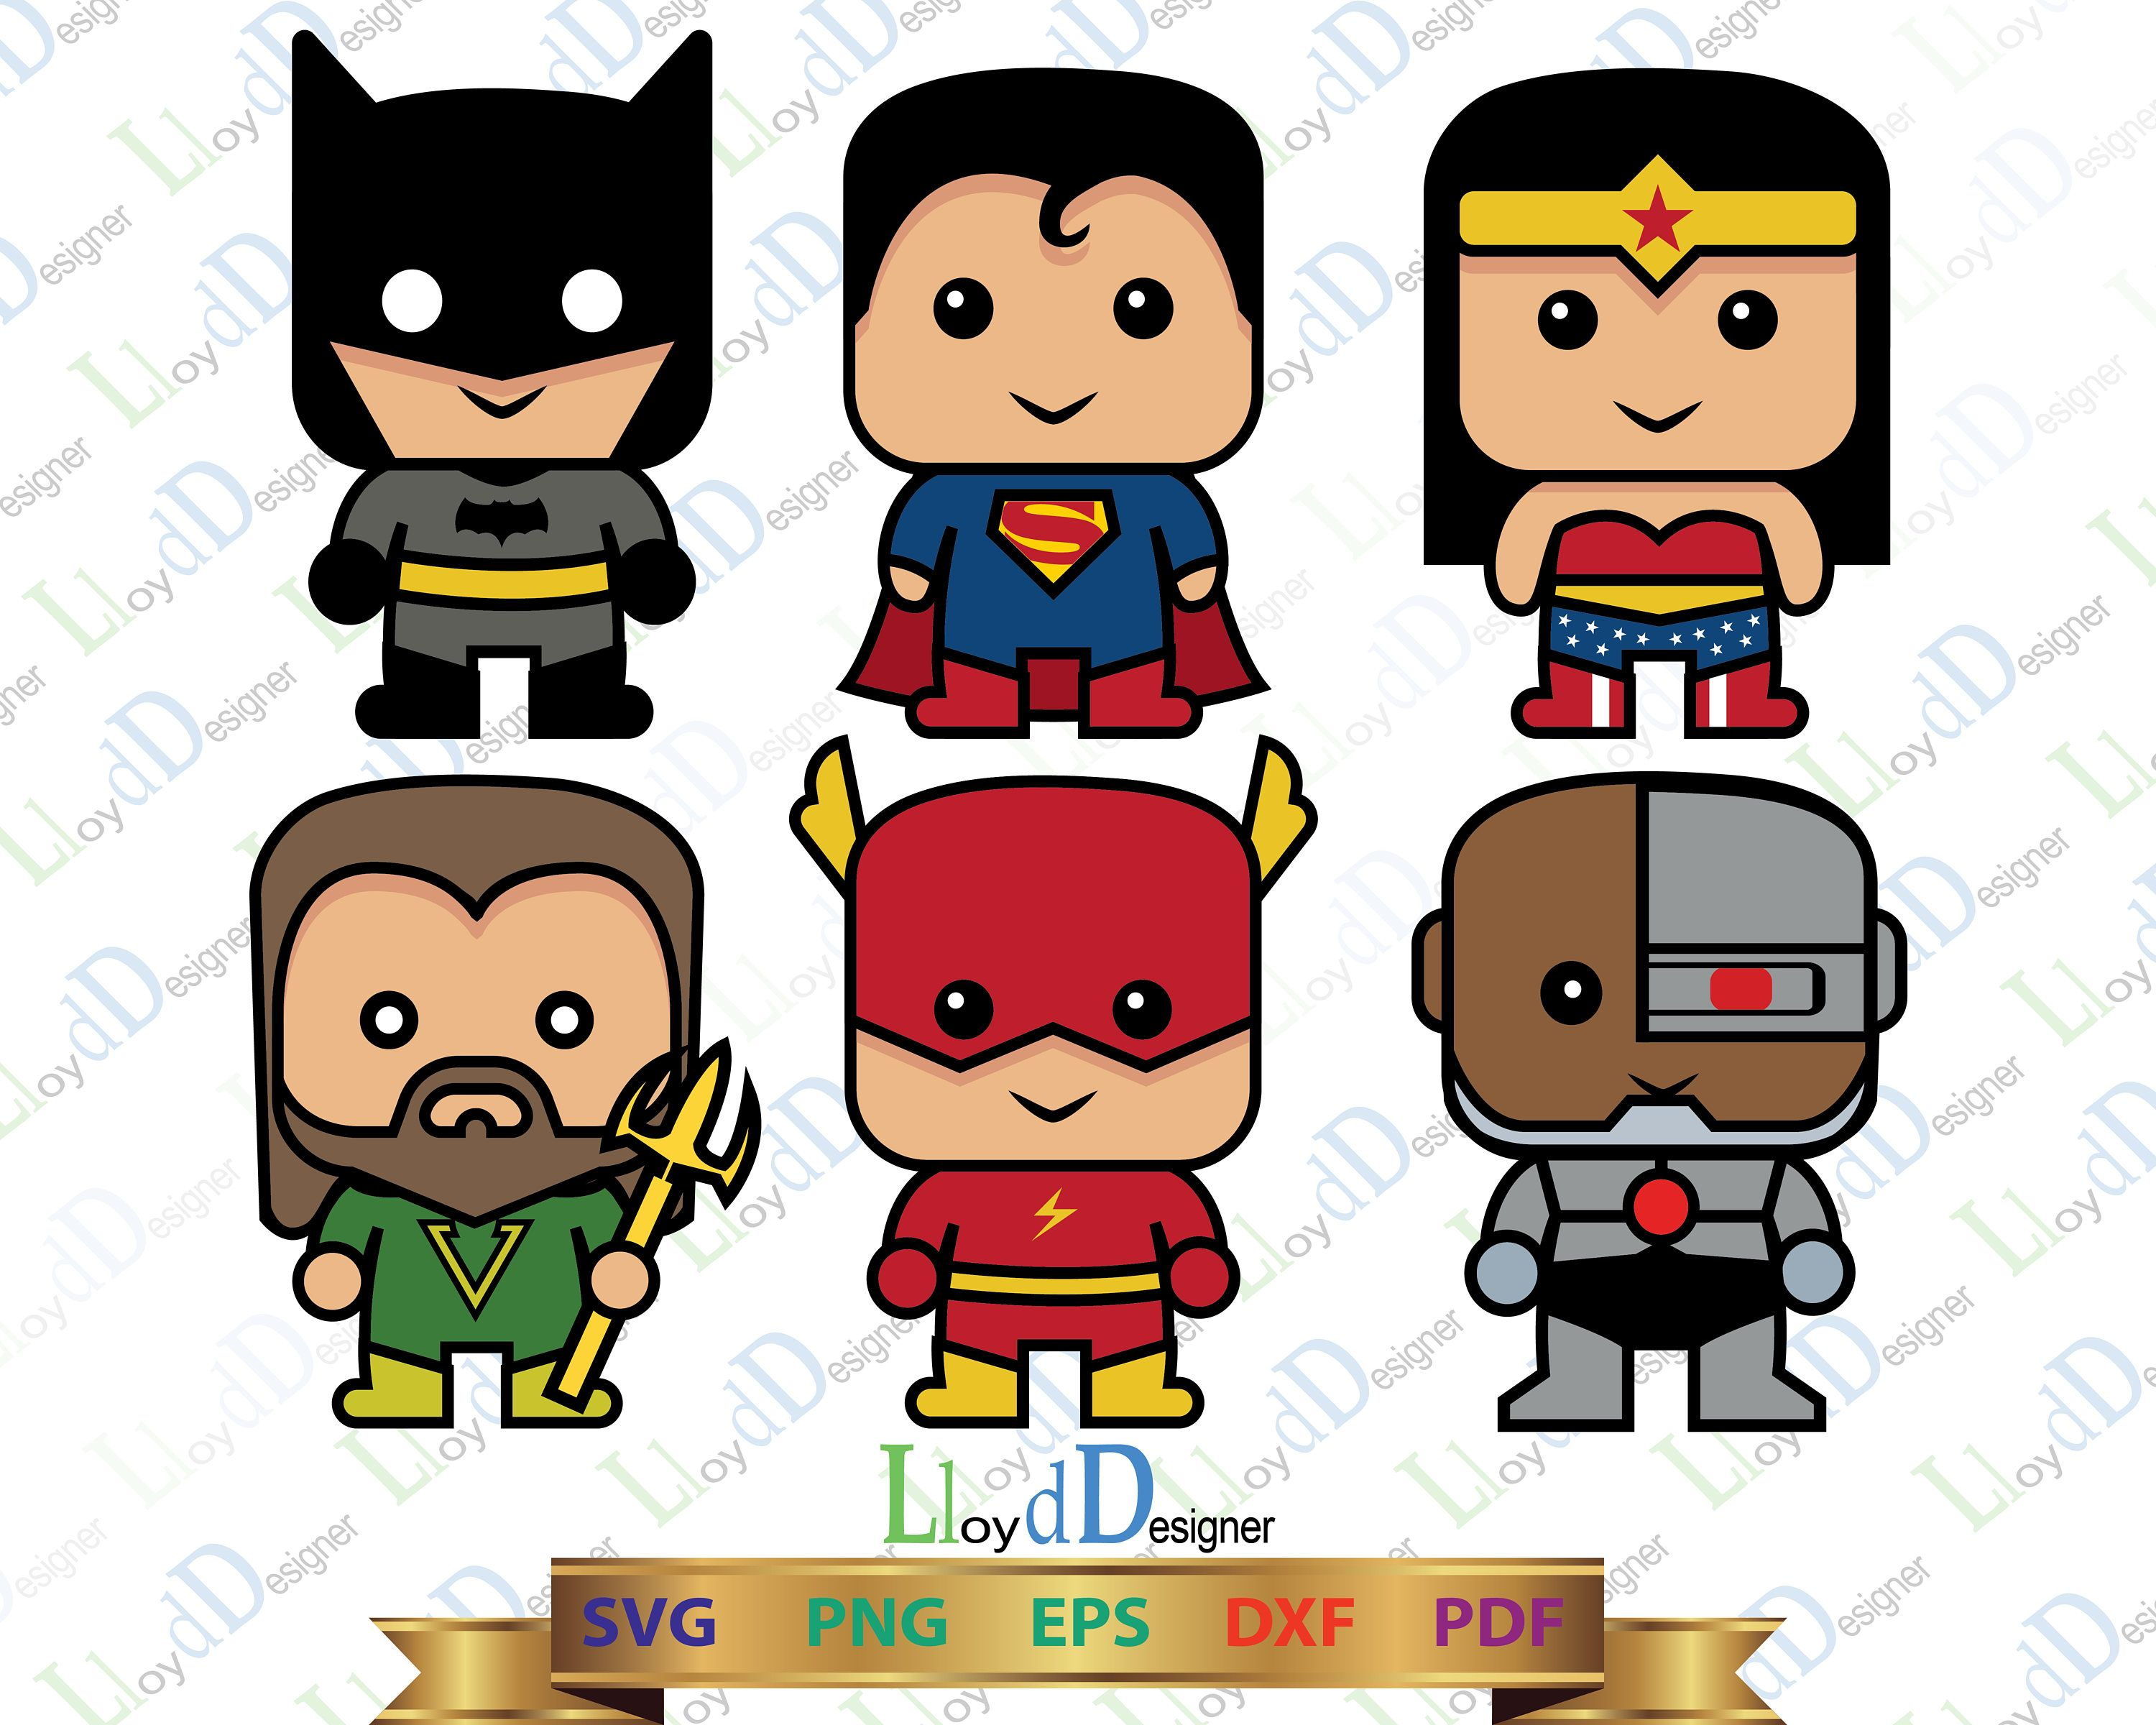 justice league svg cute justice league clipart batman svg kid s rh pinterest com Justice League Checks Justice League Checks